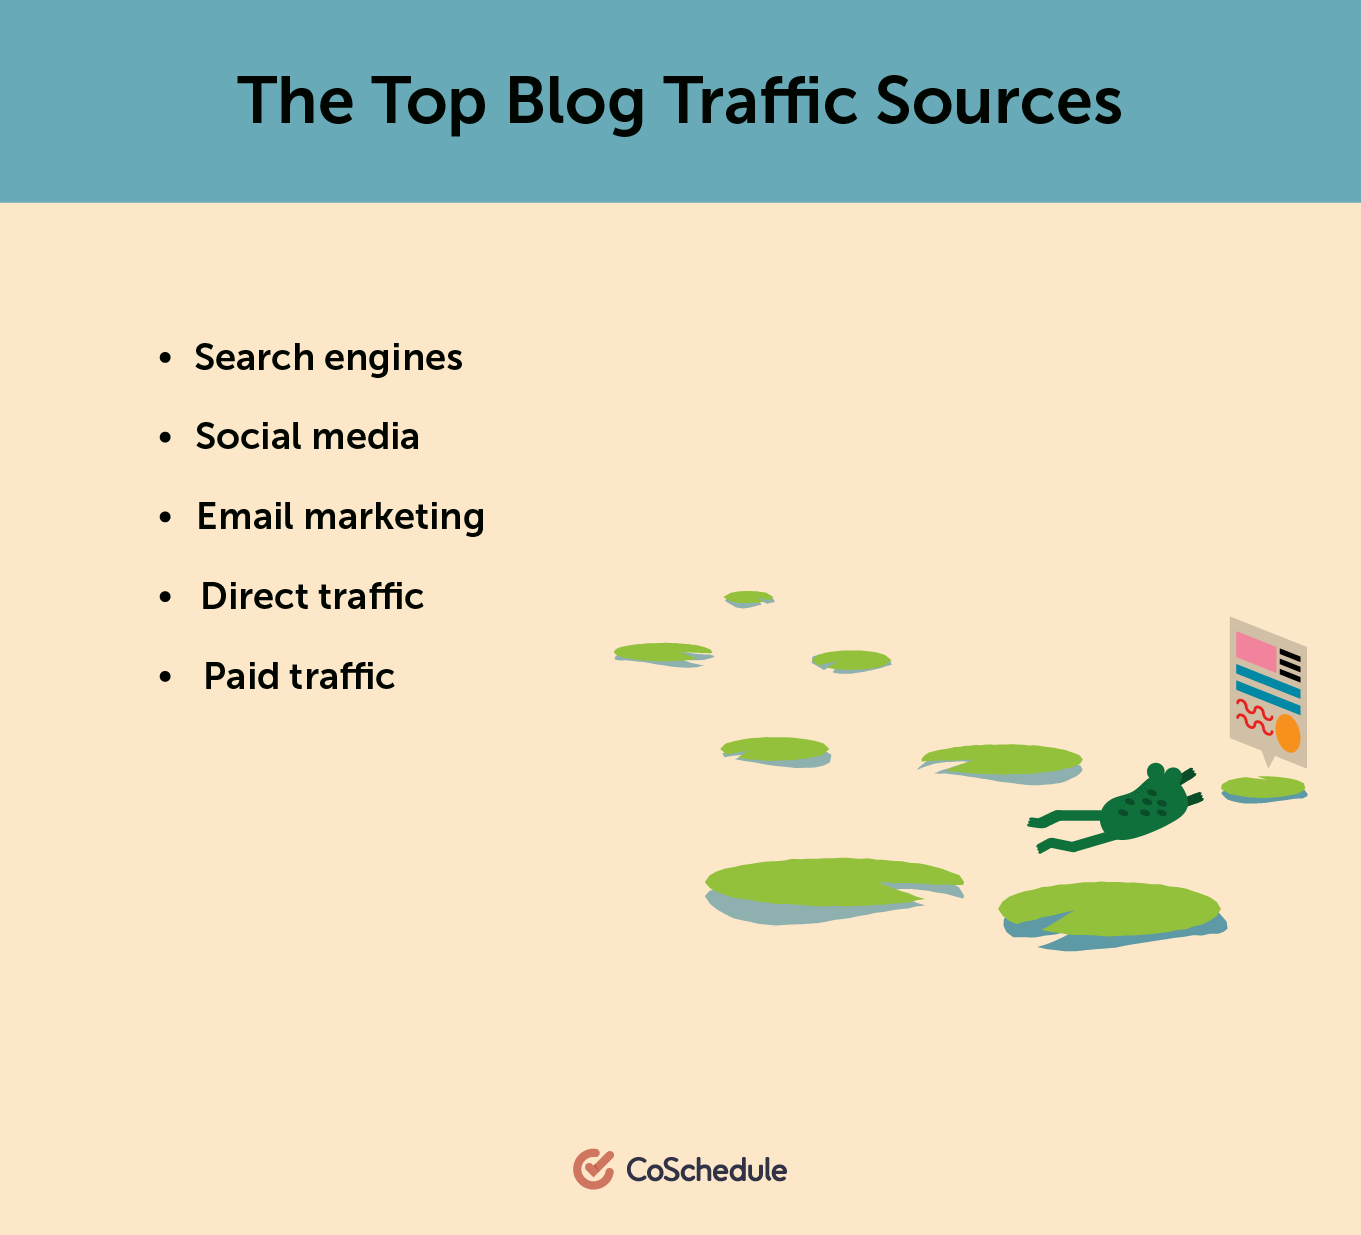 The Top Blog Traffic Sources